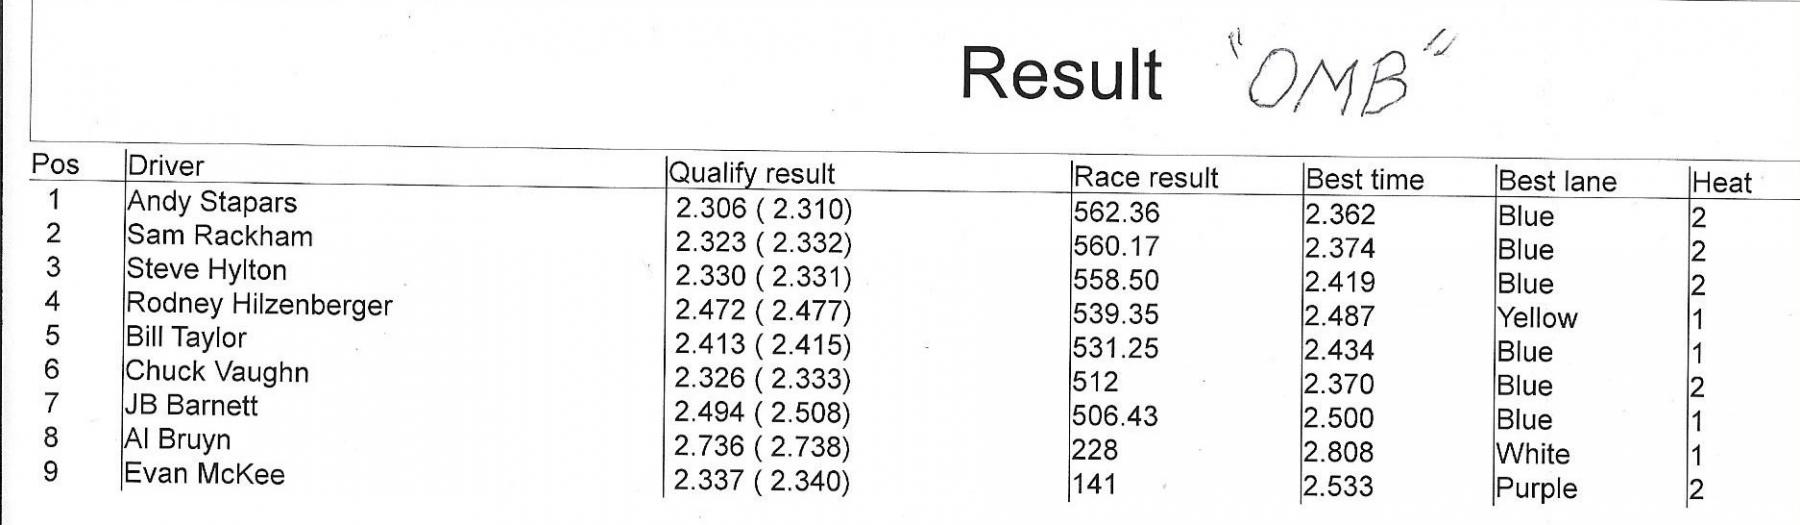 11219 omb results.jpeg